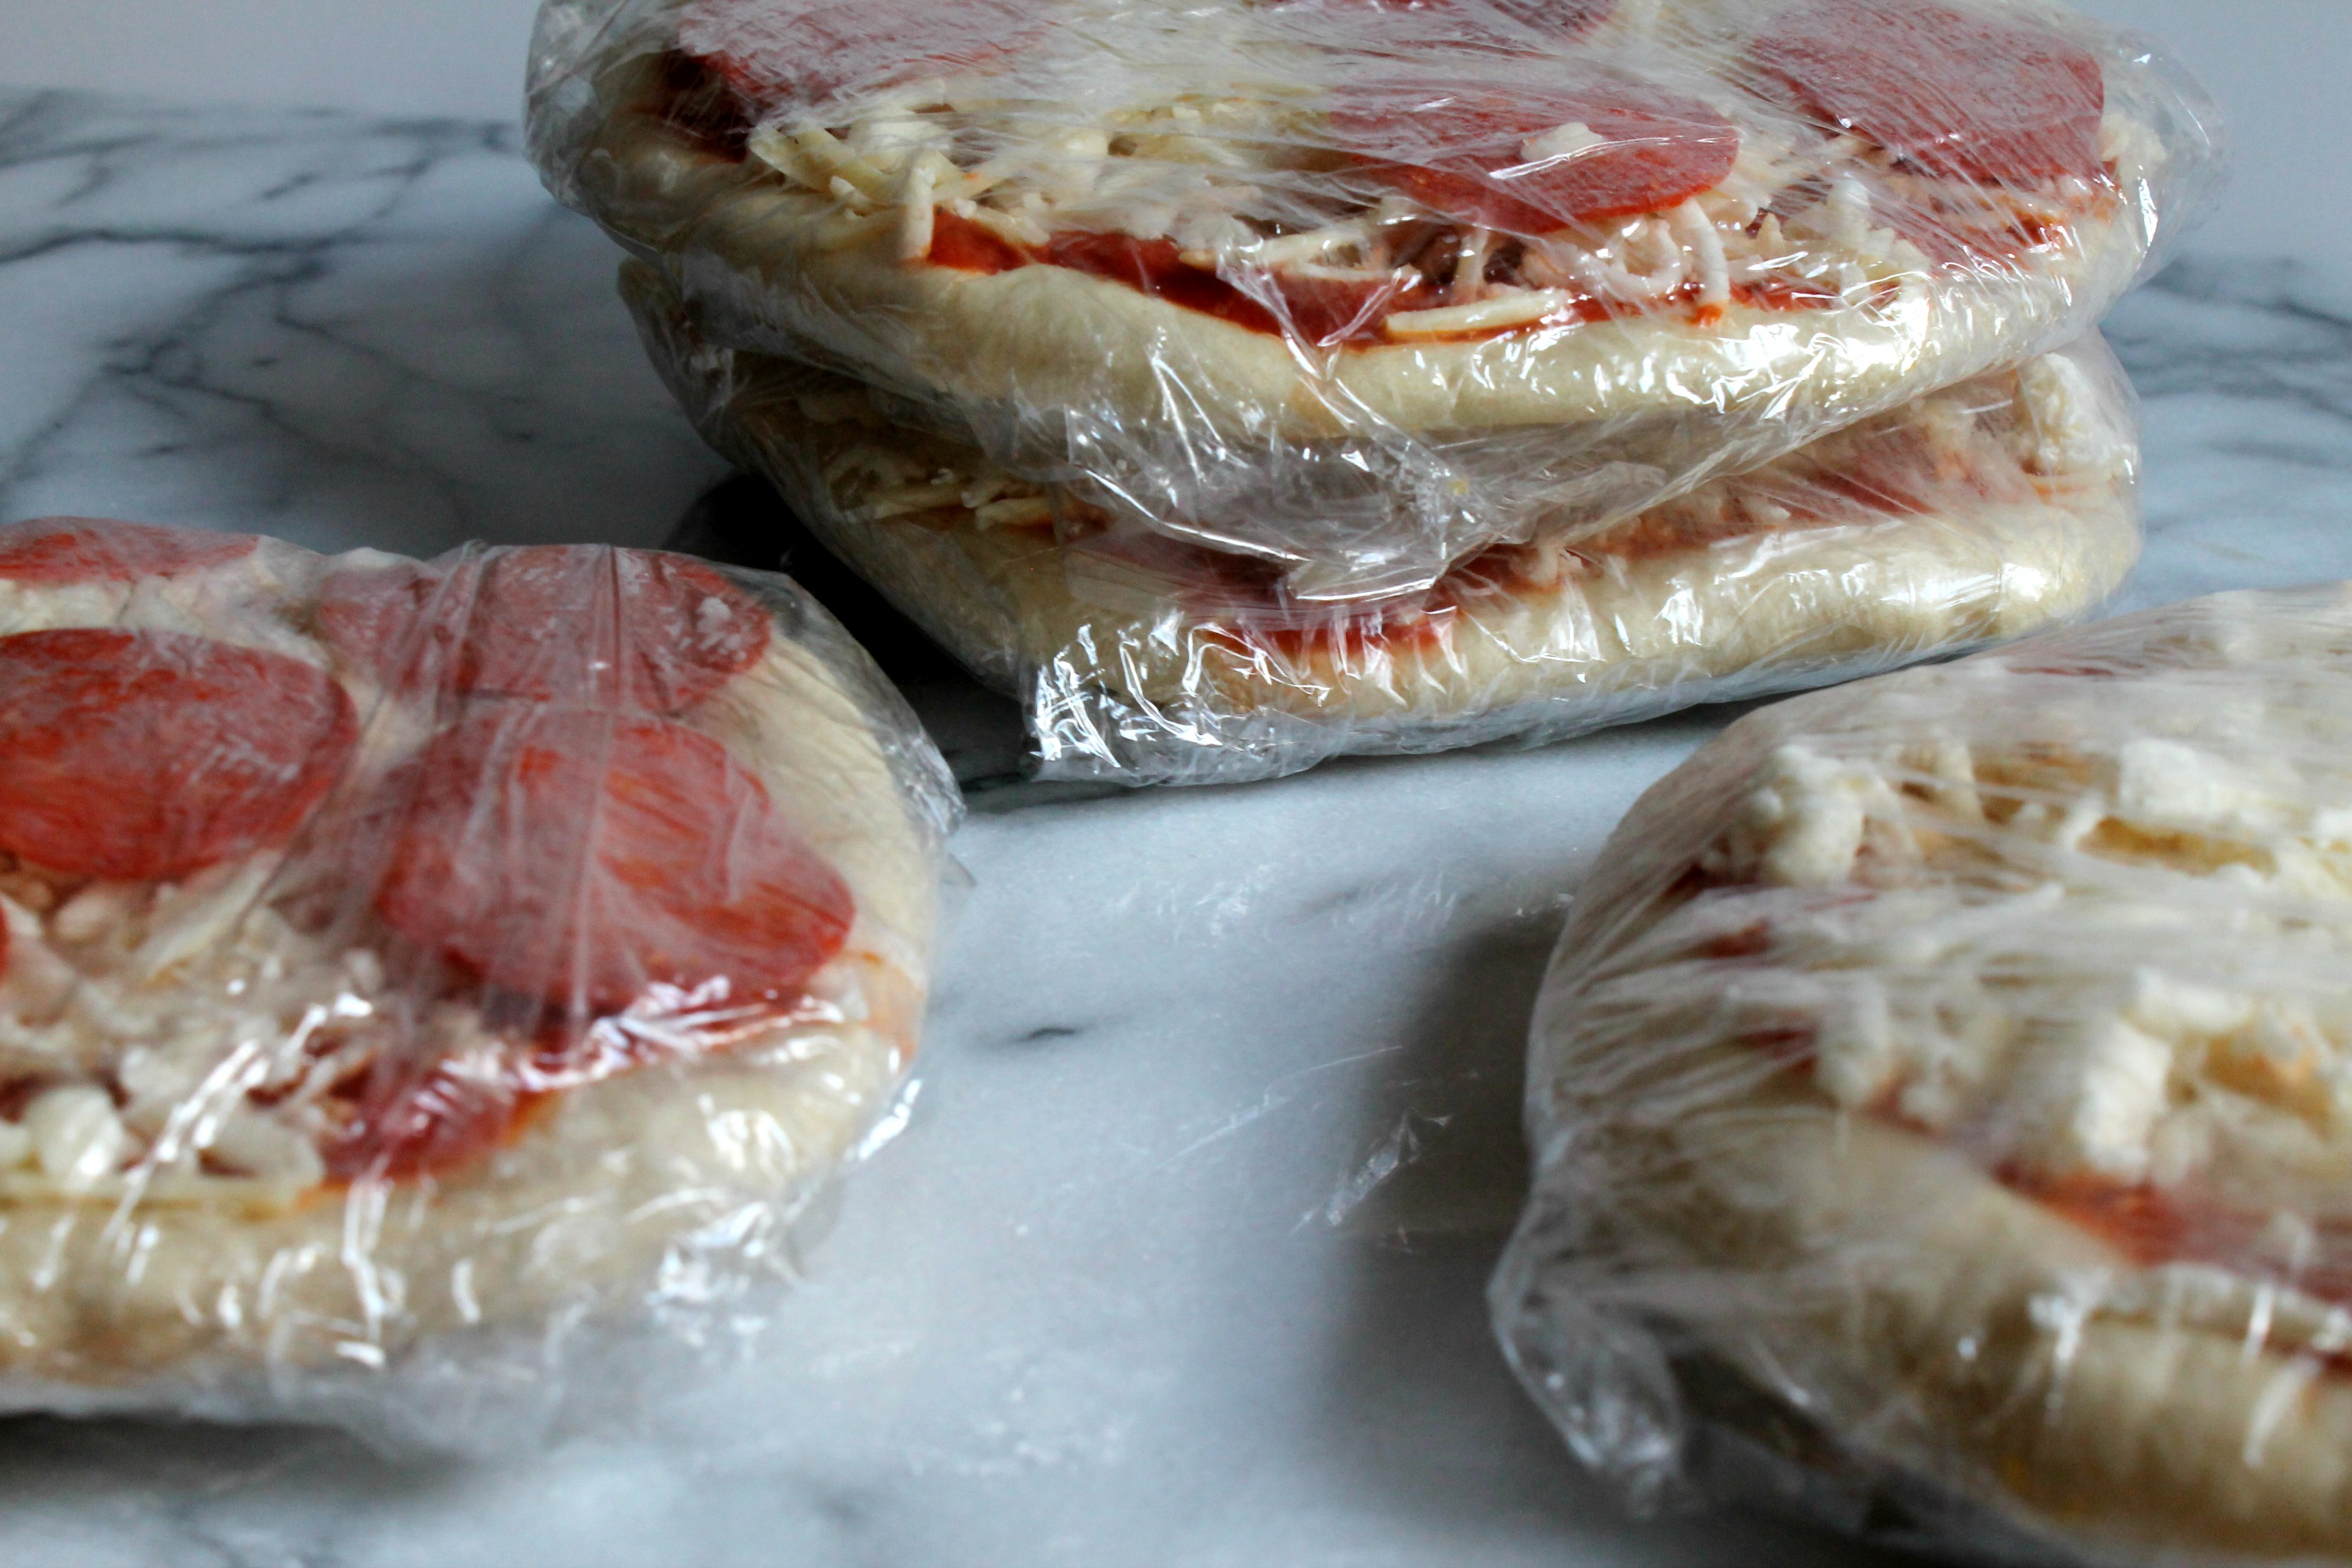 frozen pizza If the thought of frozen pizza makes you think of middle school cafeteria  cardboard-like pies made with less-than-fresh ingredients, that's.